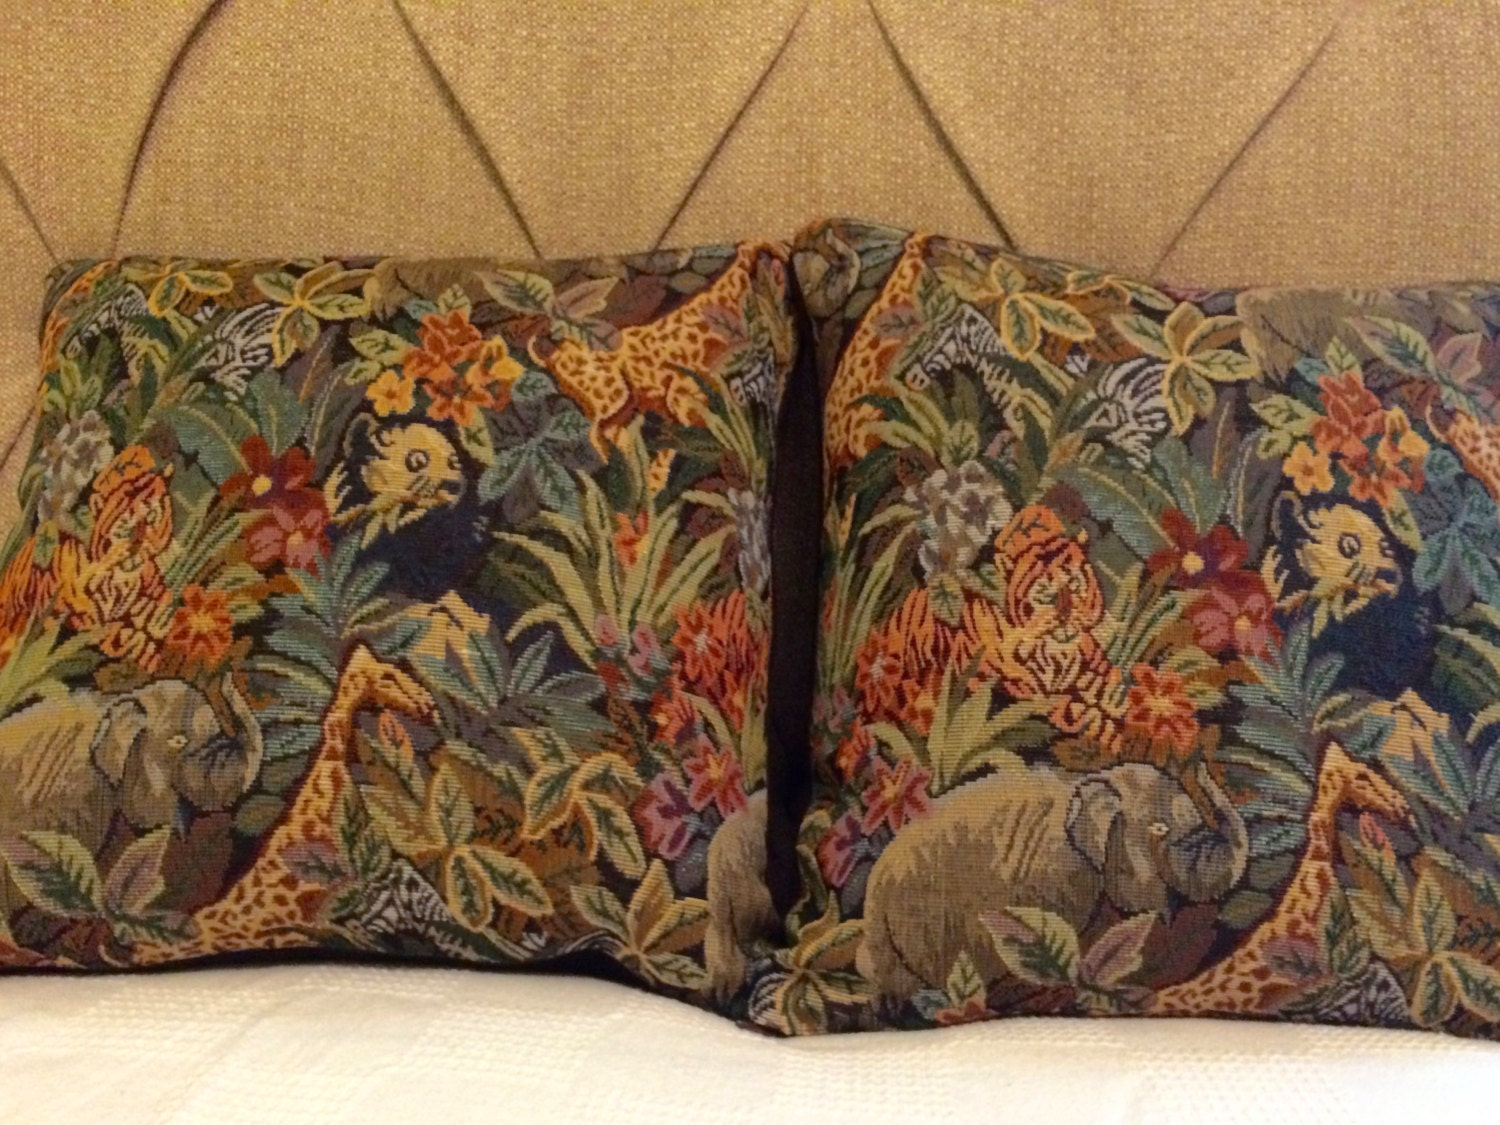 Zoo Animal Pillows : Zoo Animal Tapestry Fabric Pillows